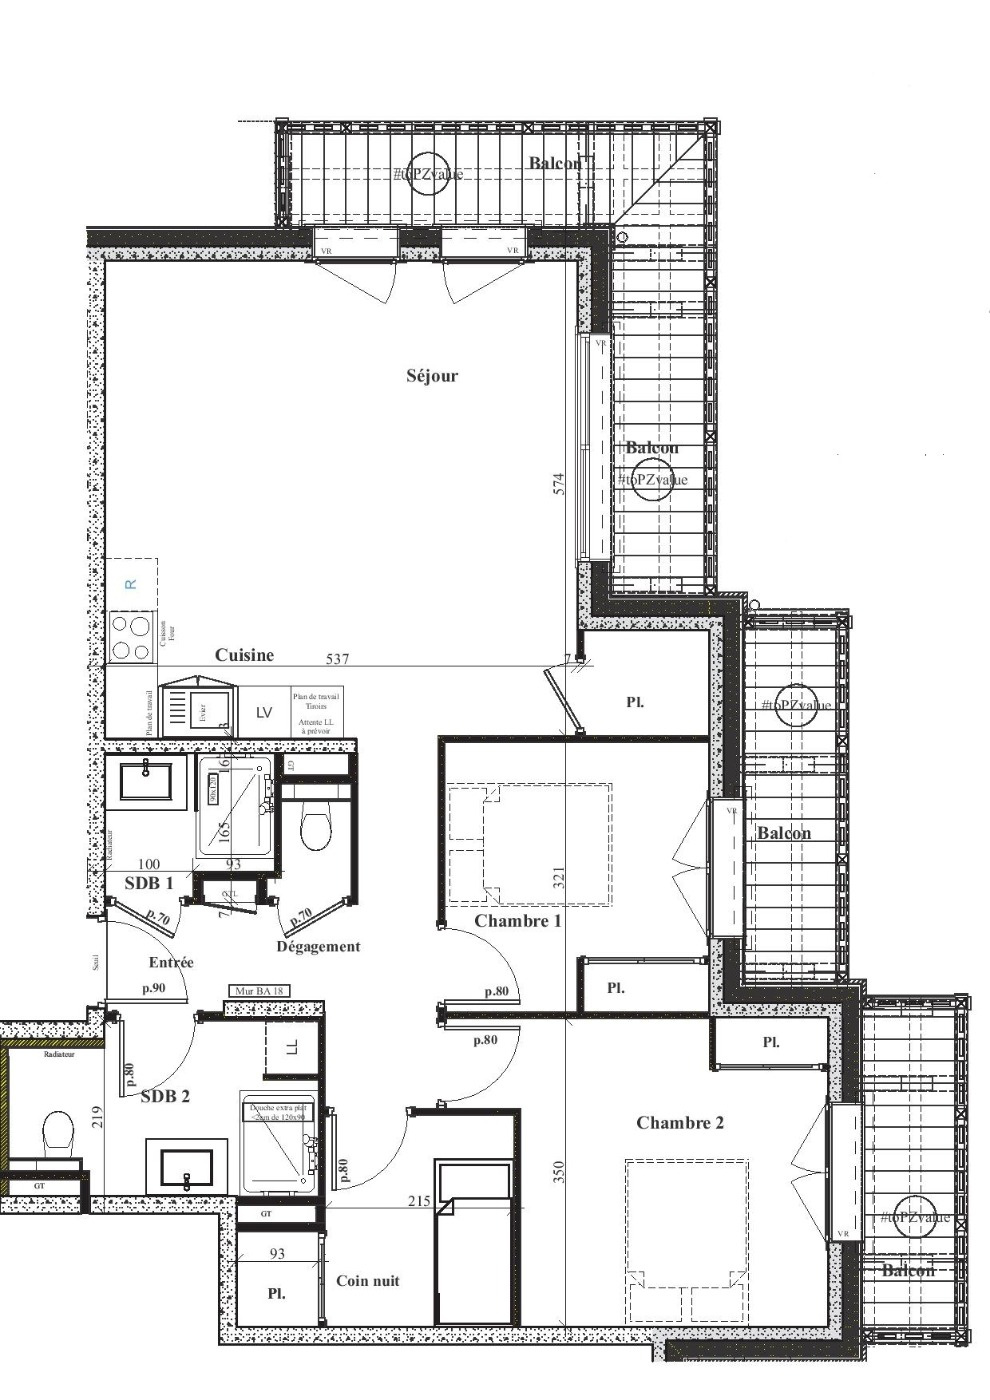 RESIDENCE 'LE GREEN' 4 ROOM FLAT OF 77.29 M2